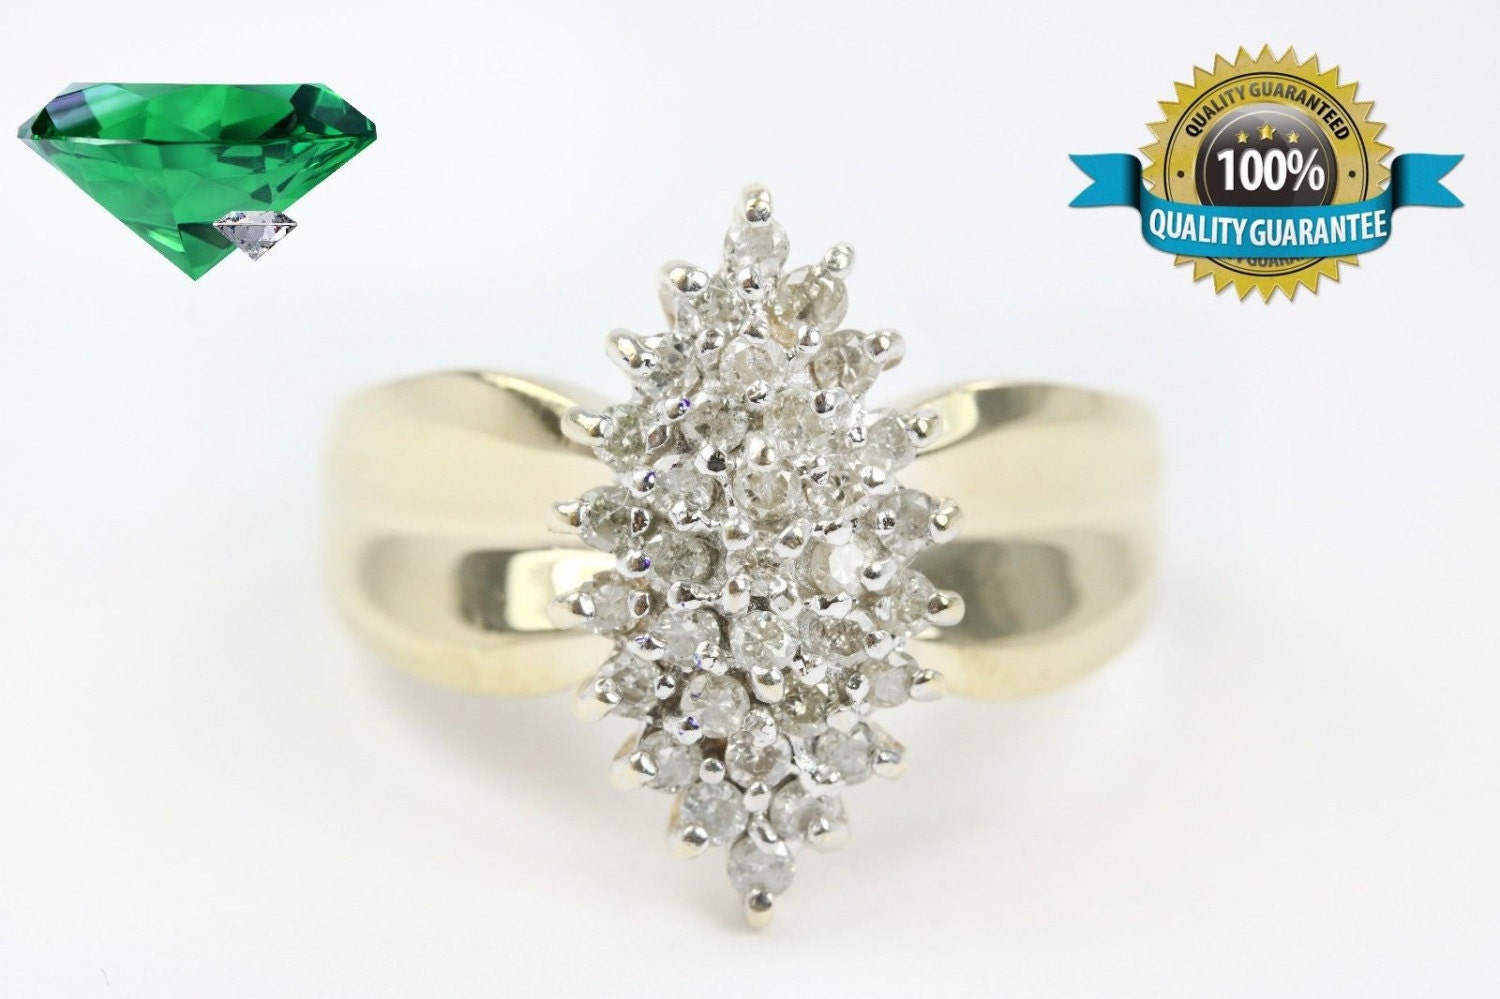 Diamond Ring Stock Images RoyaltyFree Images amp Vectors